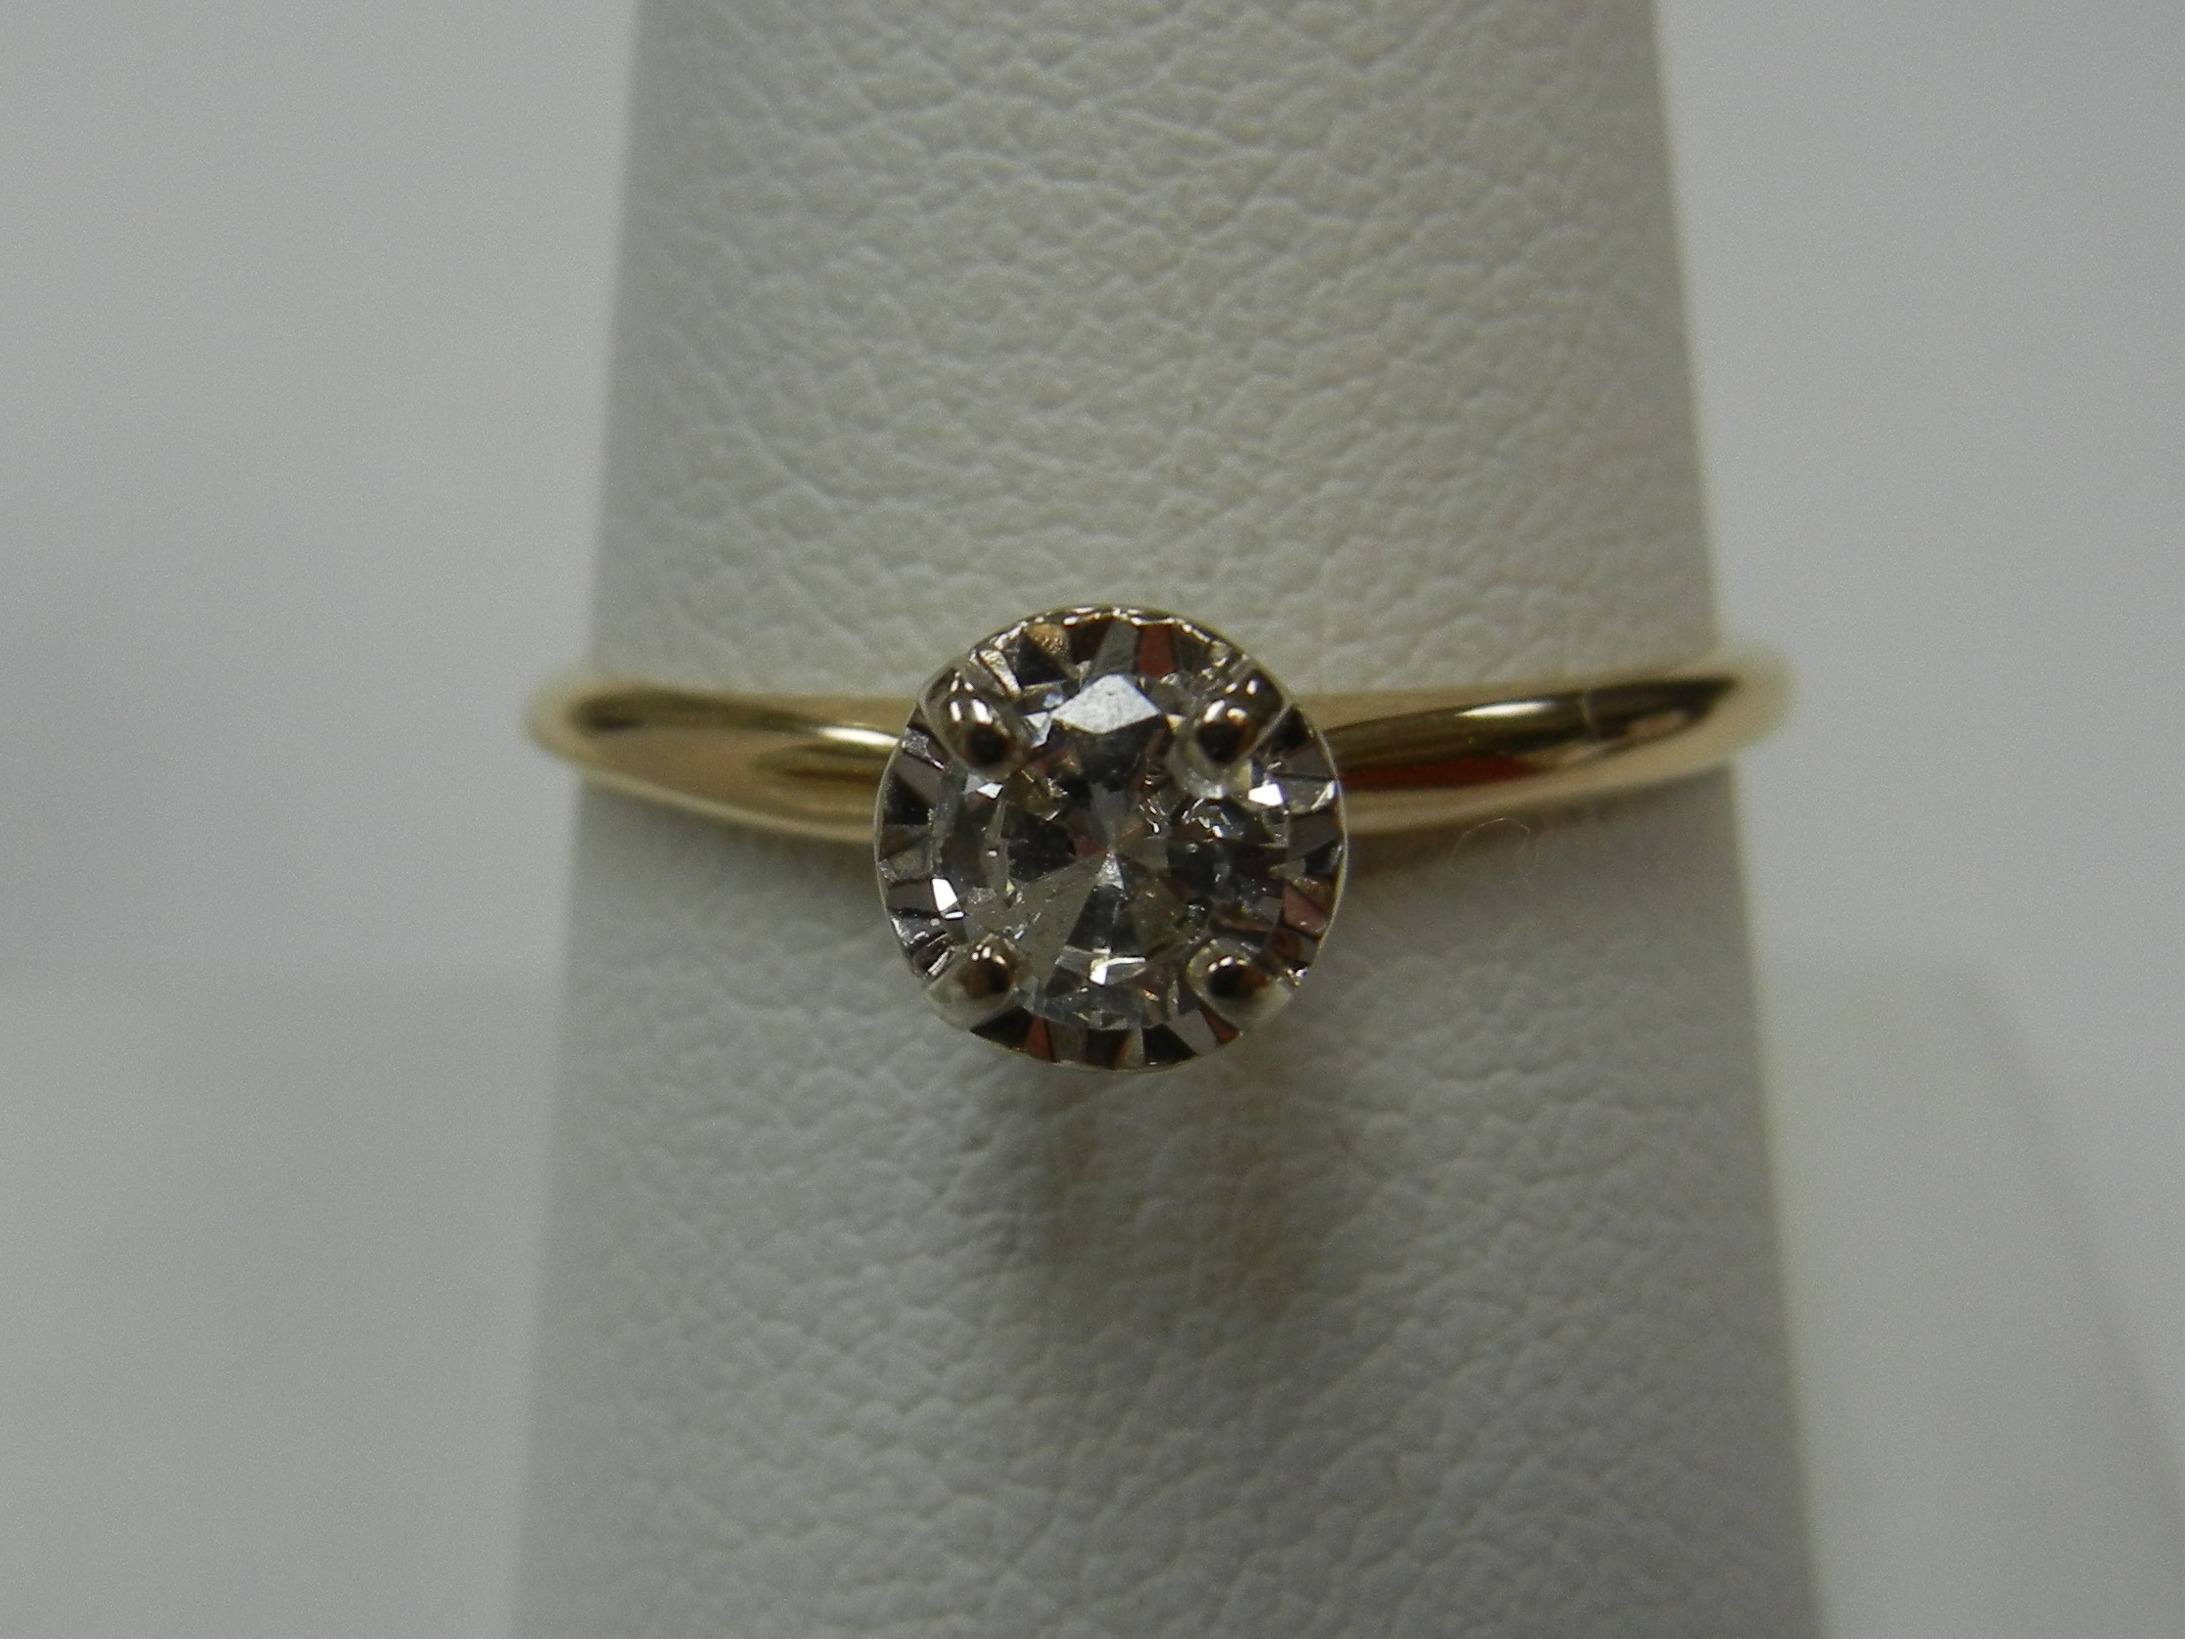 VINTAGE STYLE SOLITAIRE ENGAGEMENT RING WITH 1/4 CT DIAMOND - SIZE 8